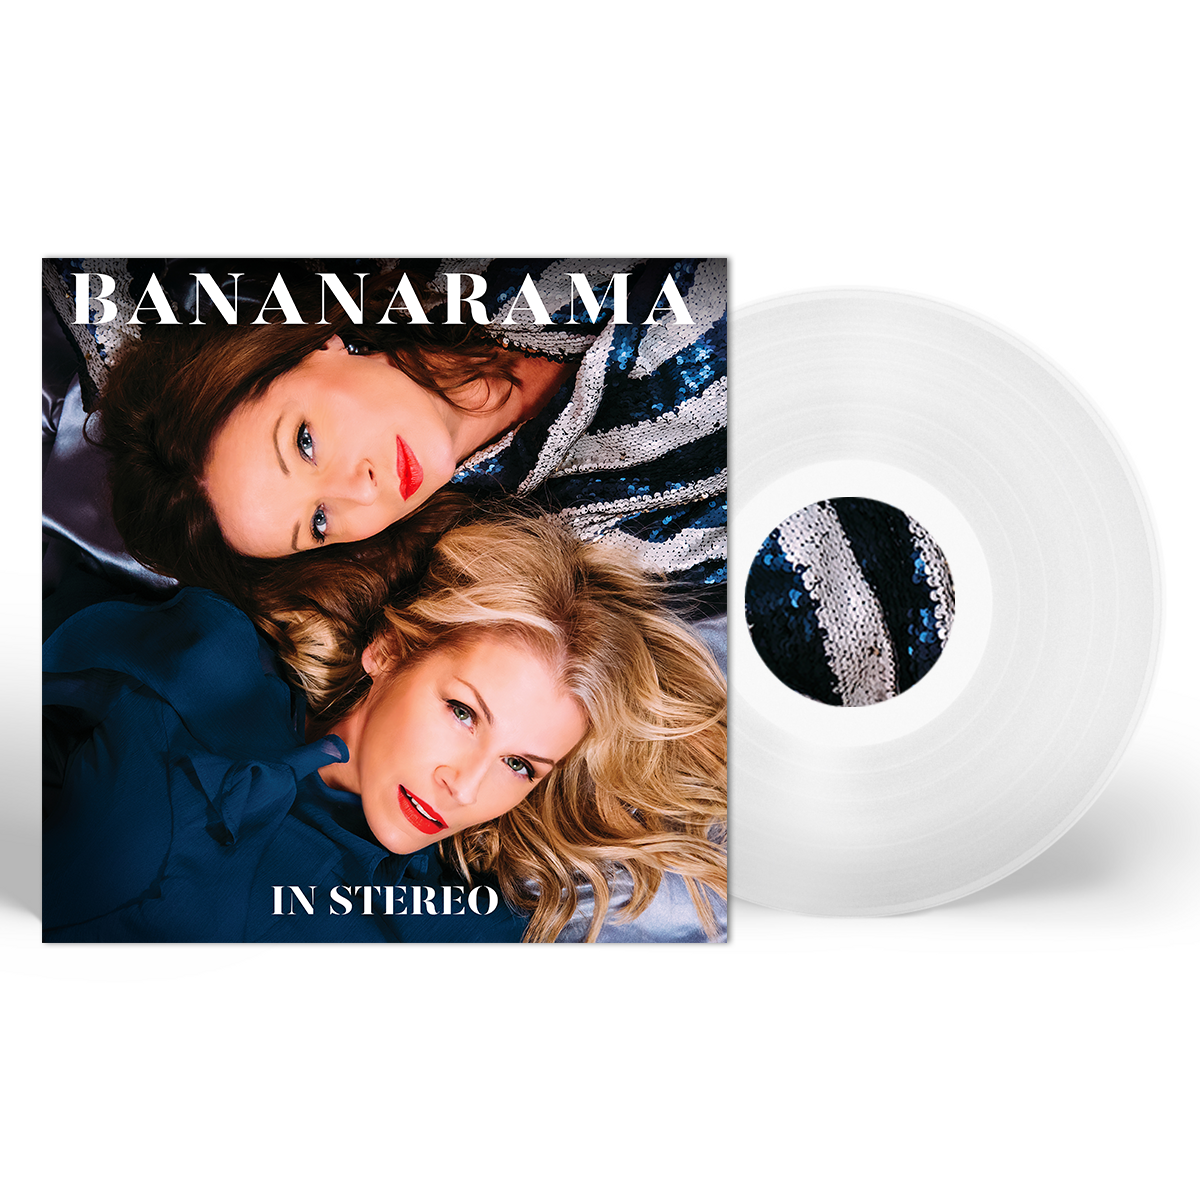 "In Stereo (Limited Signed Clear 12"" Vinyl) - Bananarama"